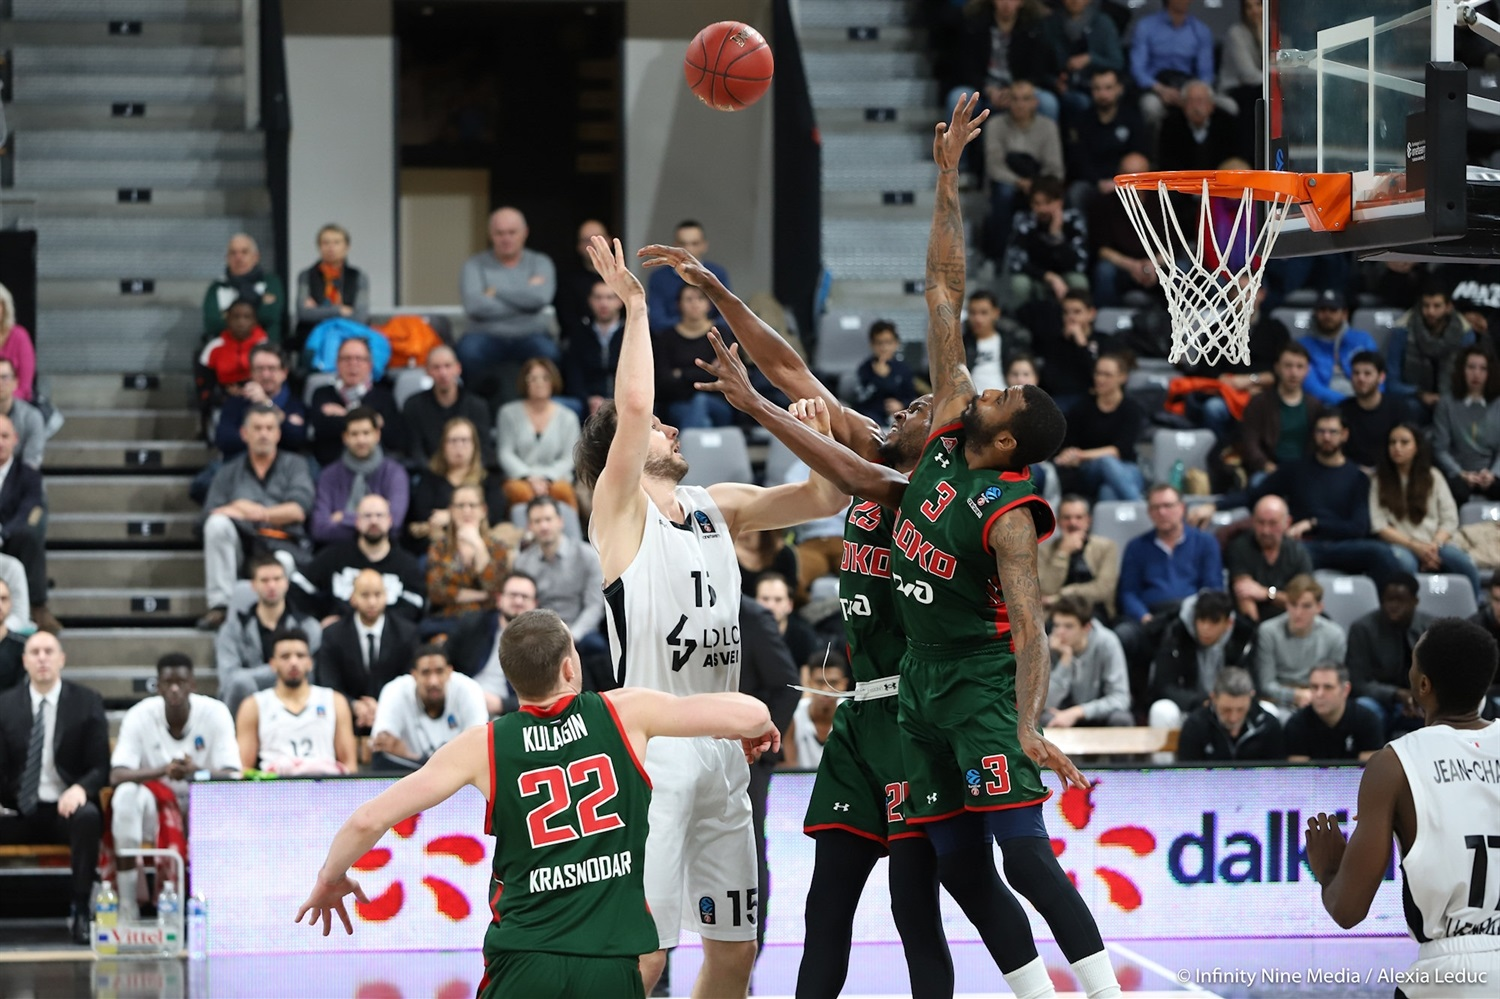 Miro Bilan - LDLC ASVEL Villeurbanne (photo Infinity Nine Media - Alexia Leduc) - EC18